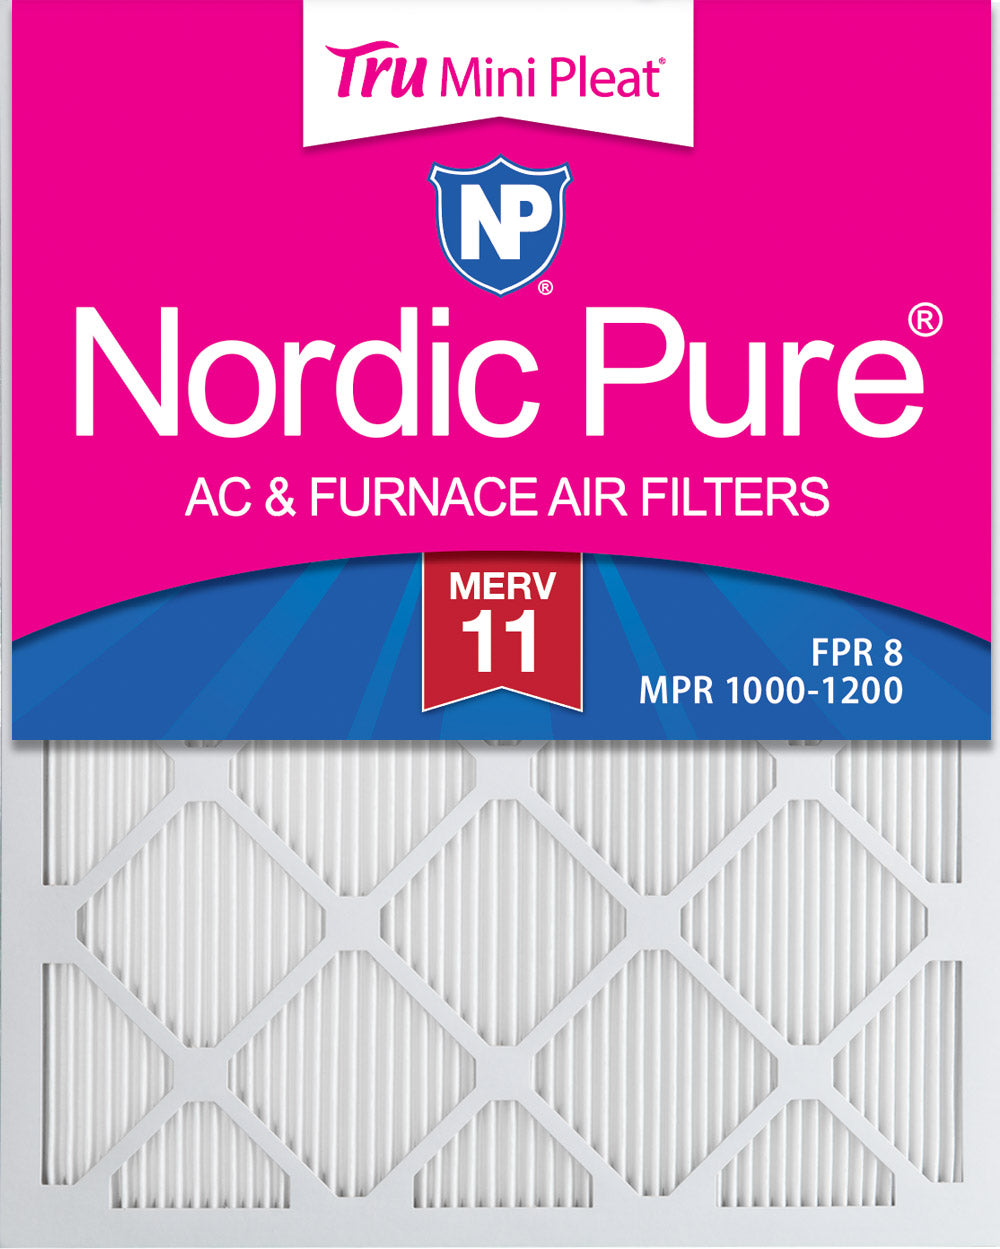 14x24x1 Tru Mini Pleat MERV 11 AC Furnace Air Filters 6 Pack